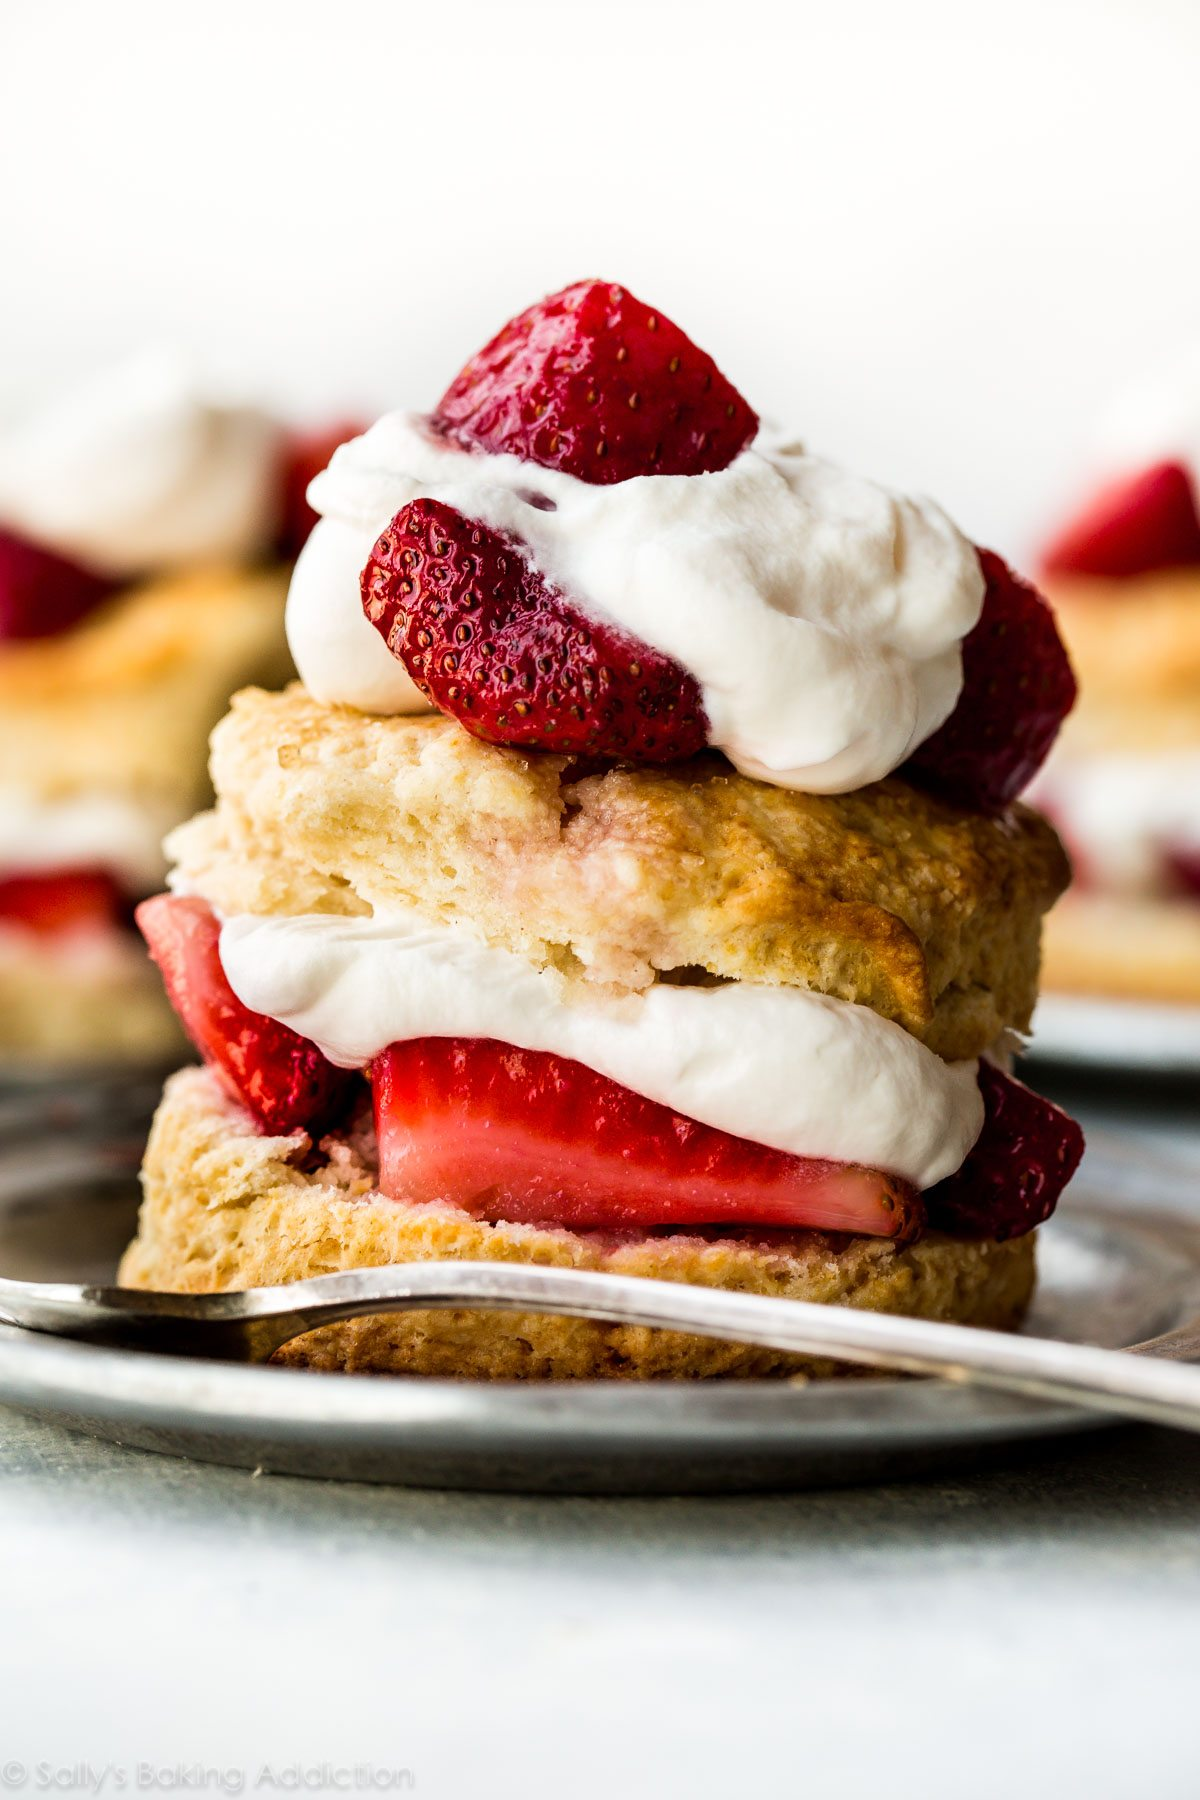 How To Make Strawberry Shortcake At Home Sweet Easy Biscuits And Whipped Cream From Scratch